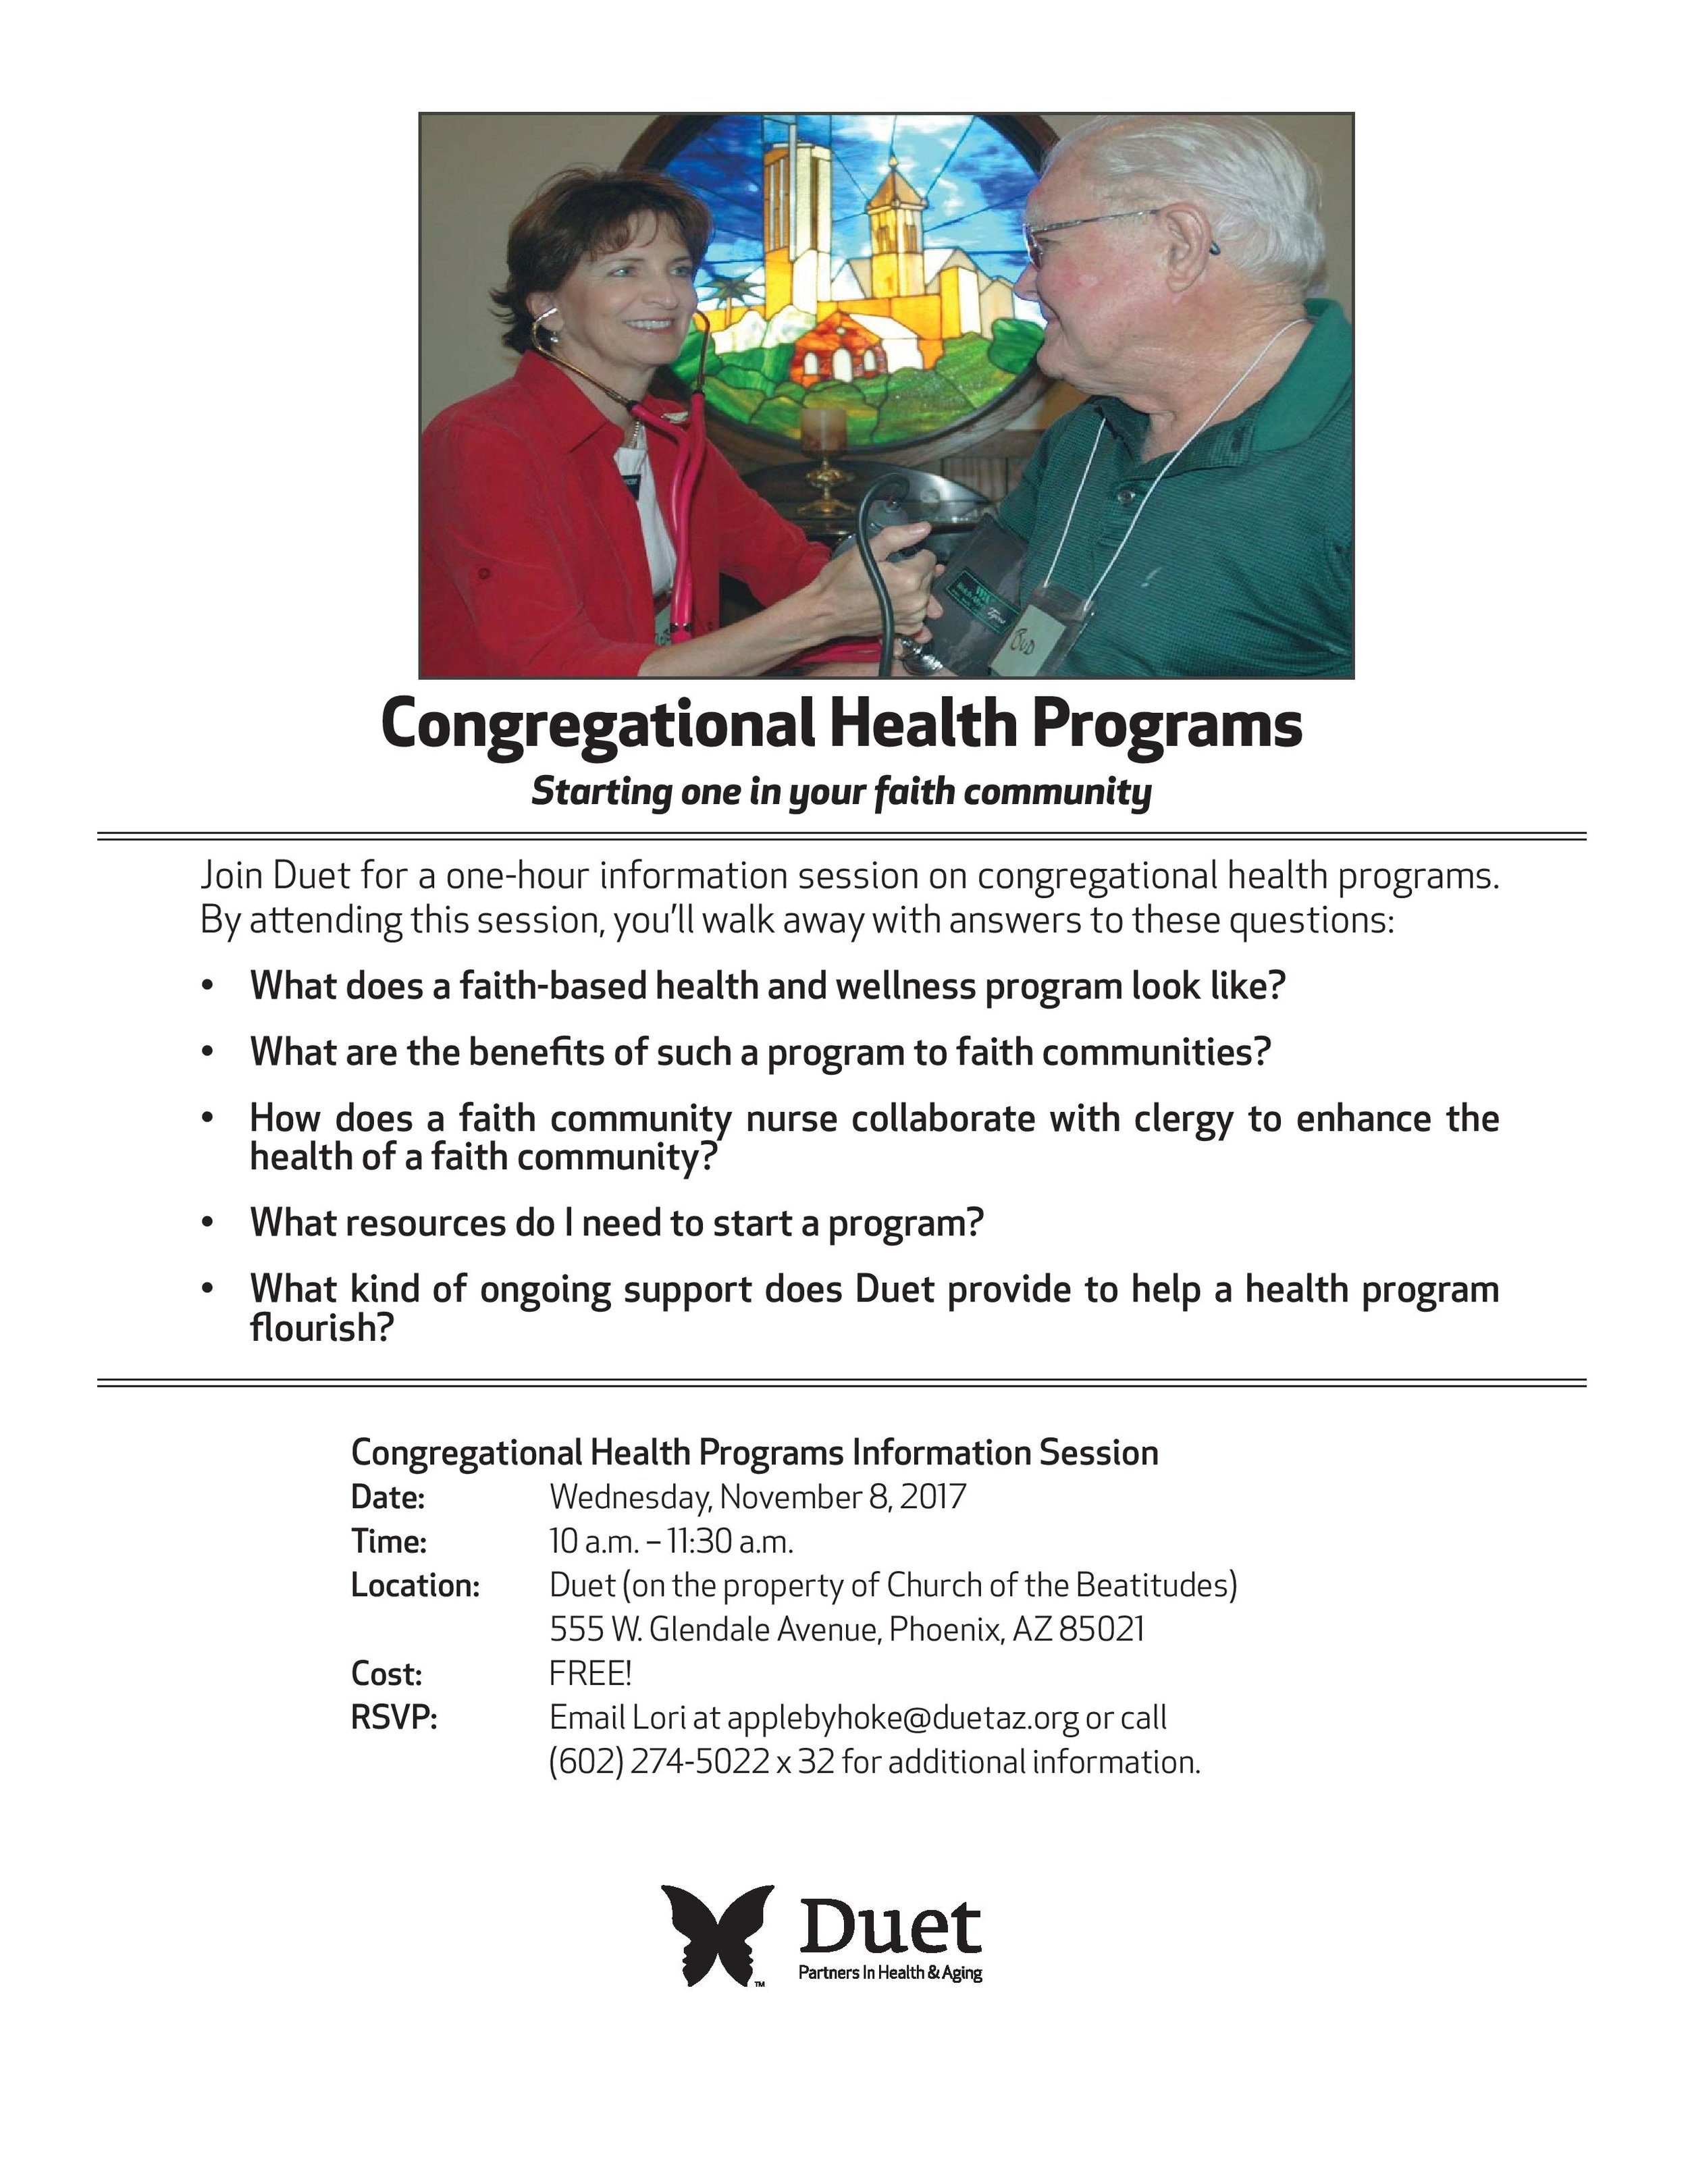 Duet Congregational Health Programs 2017.jpg